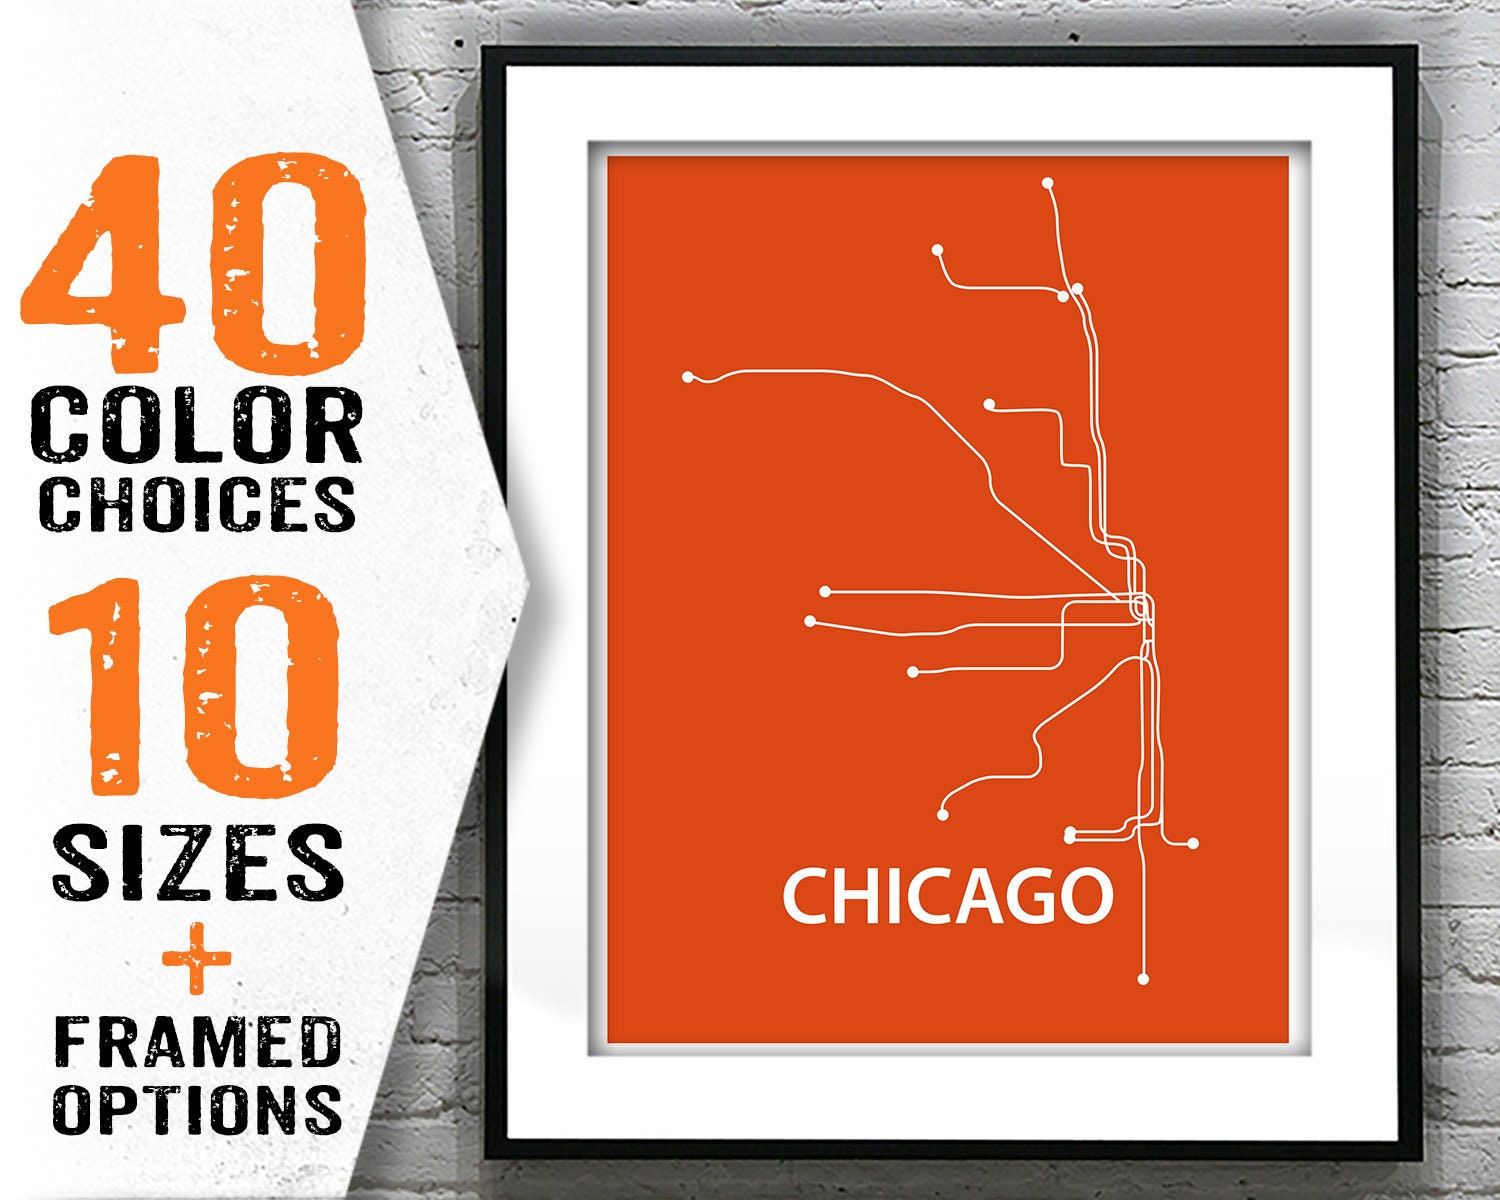 Chicago Subway Map Picture.Chicago Subway Map Poster Art Print Modern Line Drawing Item T2069